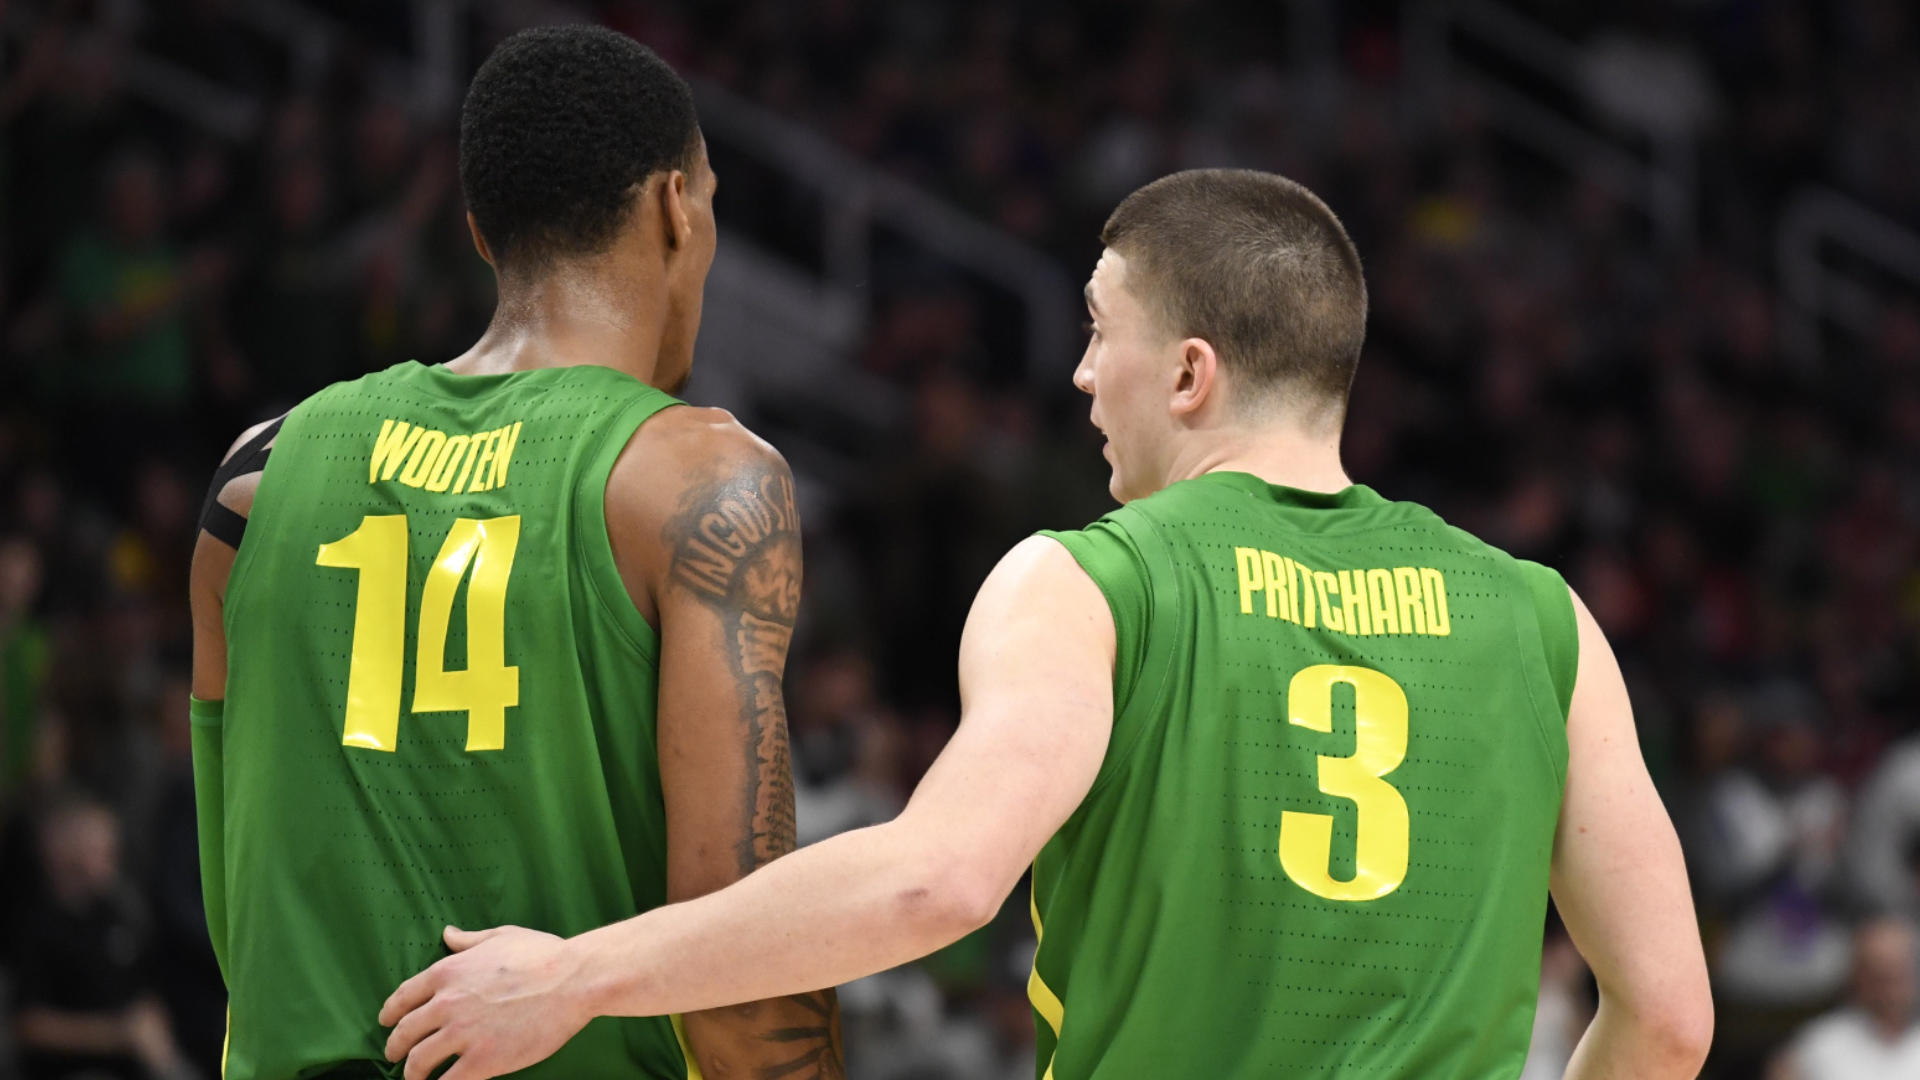 2019 March Madness: Oregon vs. UC Irvine odds, picks, predictions from expert who's 8-0 on Ducks games